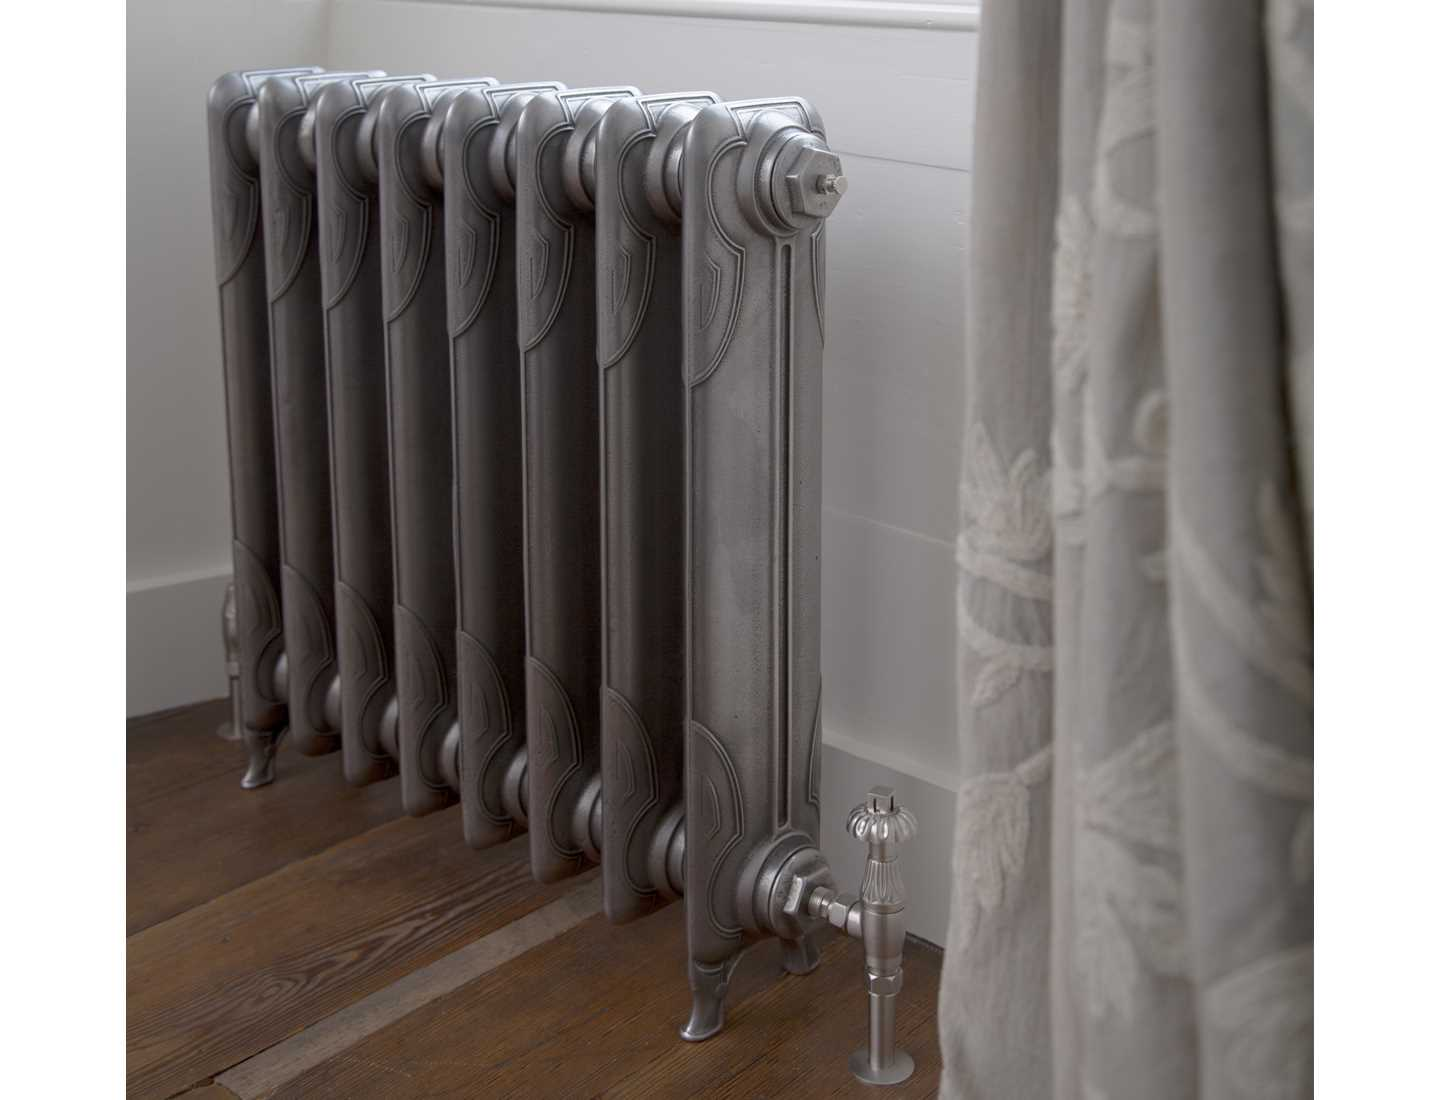 L'Art Nouveau radiator, hand burnished with chrome thermostatic traditional valve set